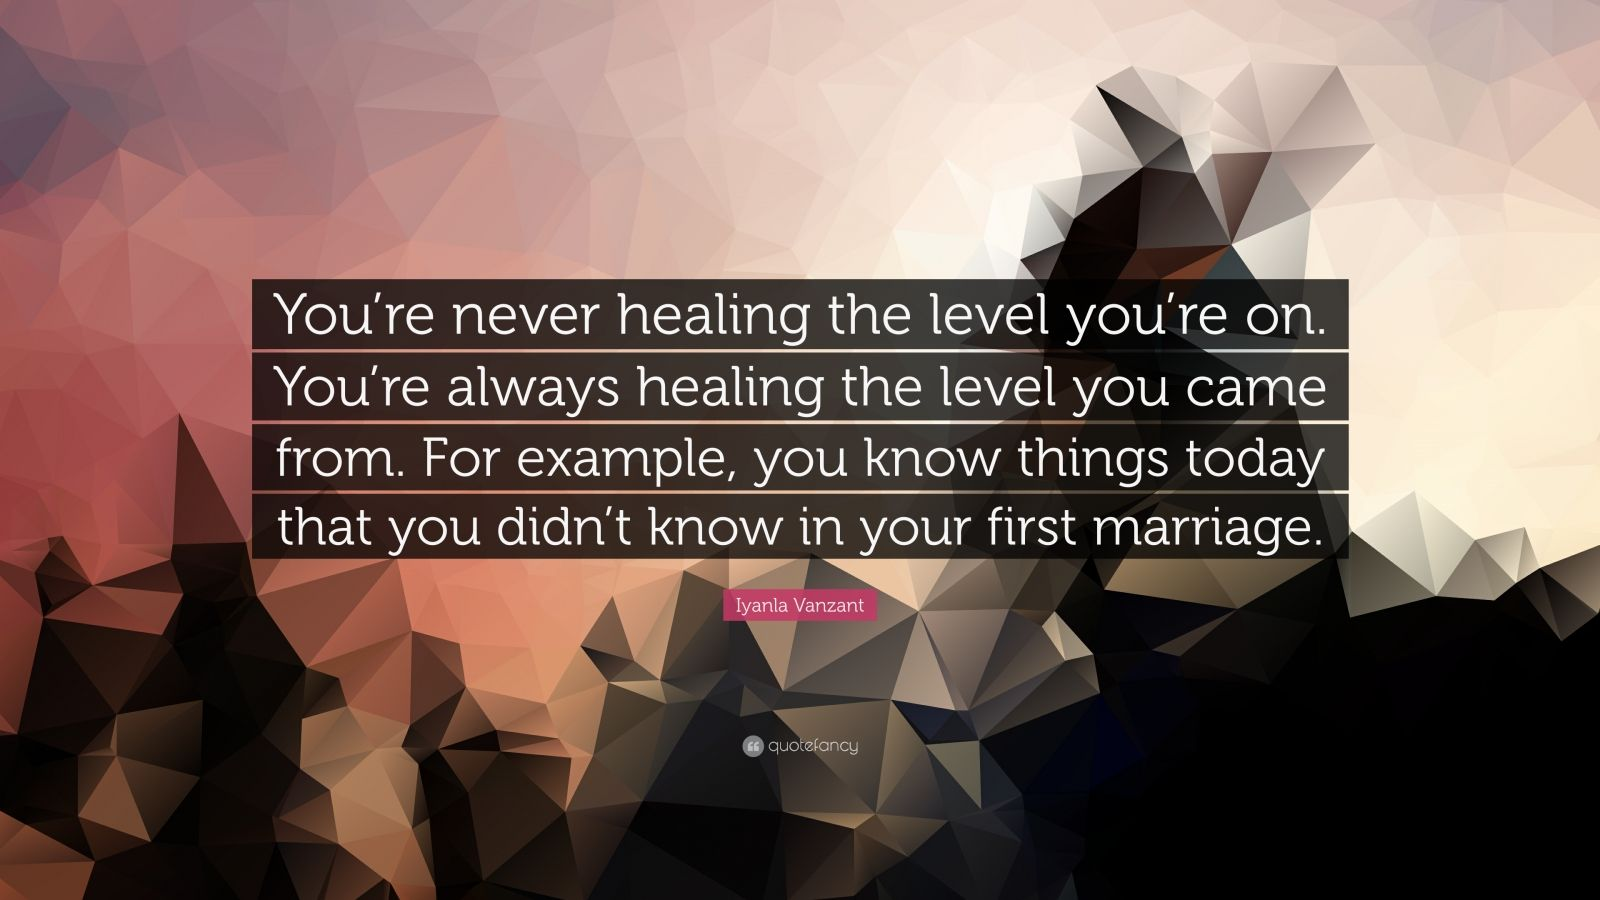 """Iyanla Vanzant Quote: """"You're never healing the level you're on. You're always healing the level you came from. For example, you know things today that you didn't know in your first marriage."""""""